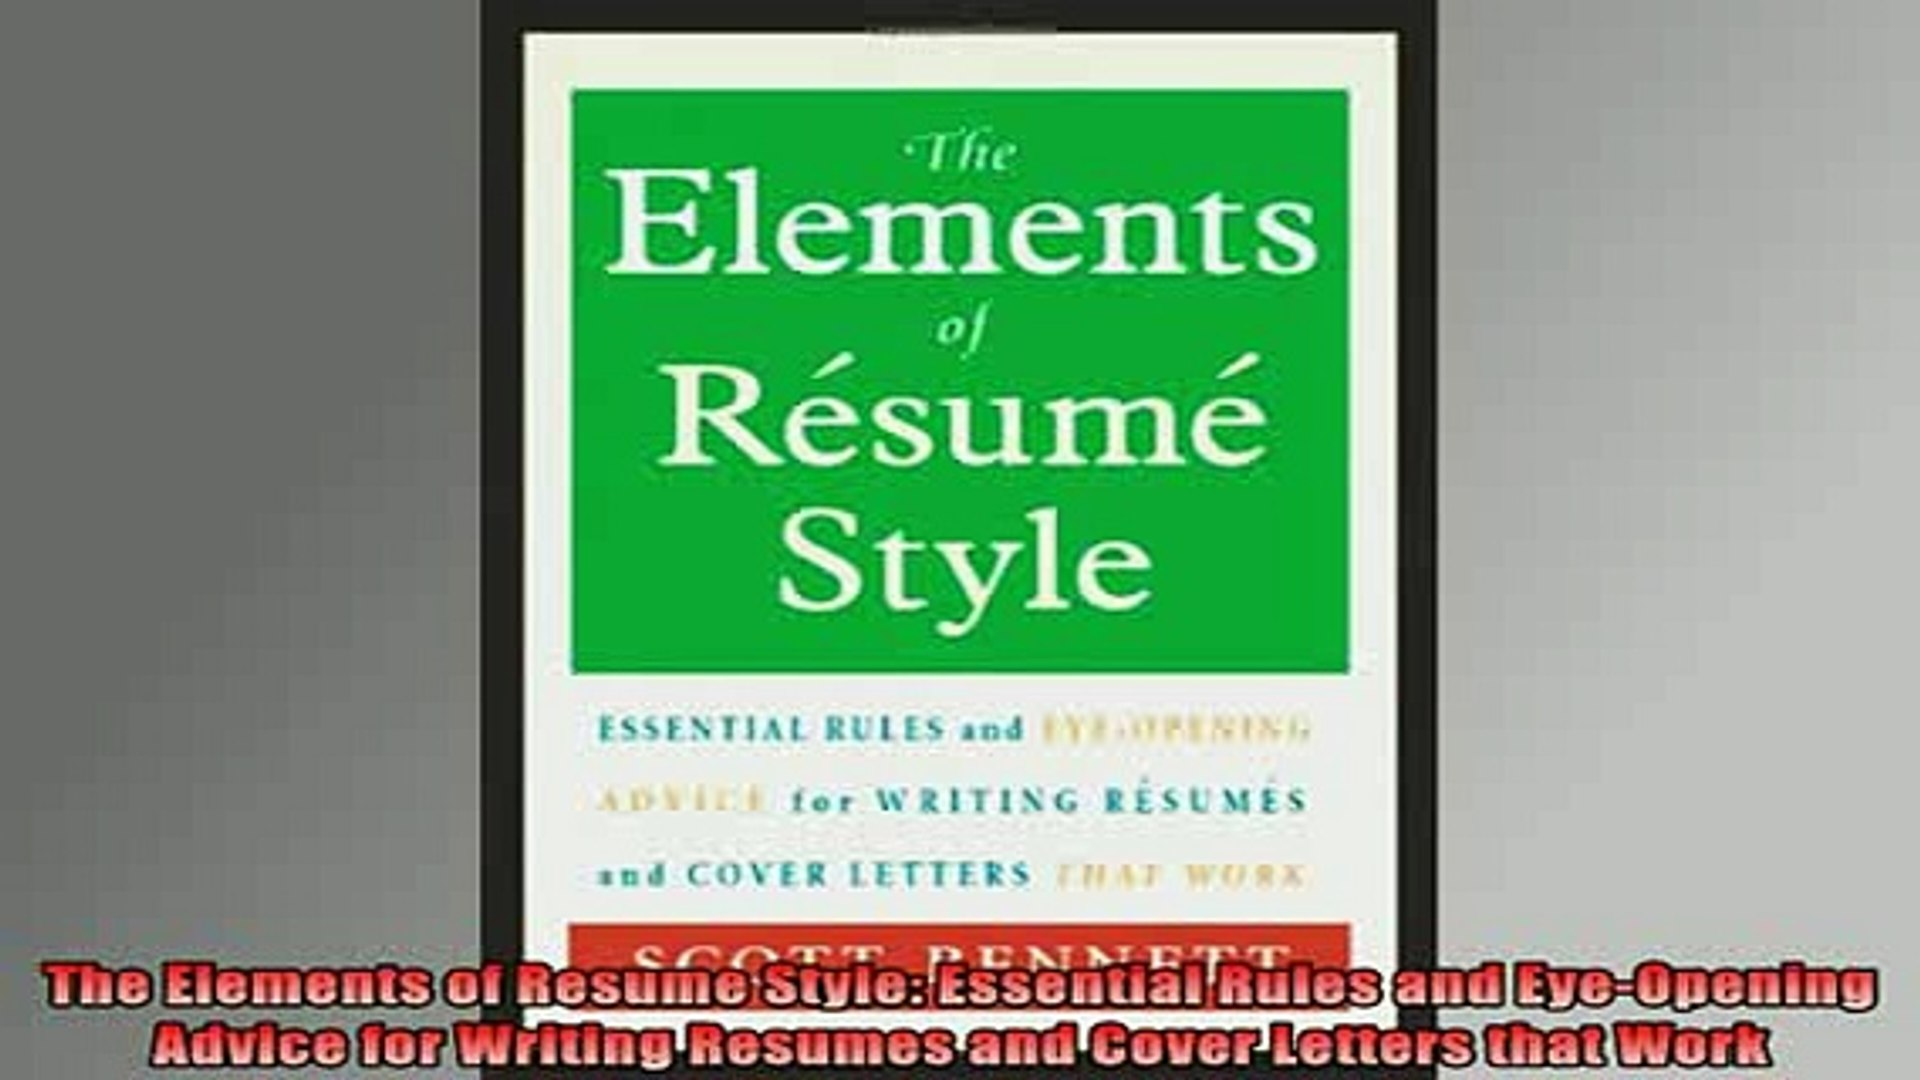 read book the elements of resume style essential rules and eyeopening advice for writing Resume Elements Of Resume Style